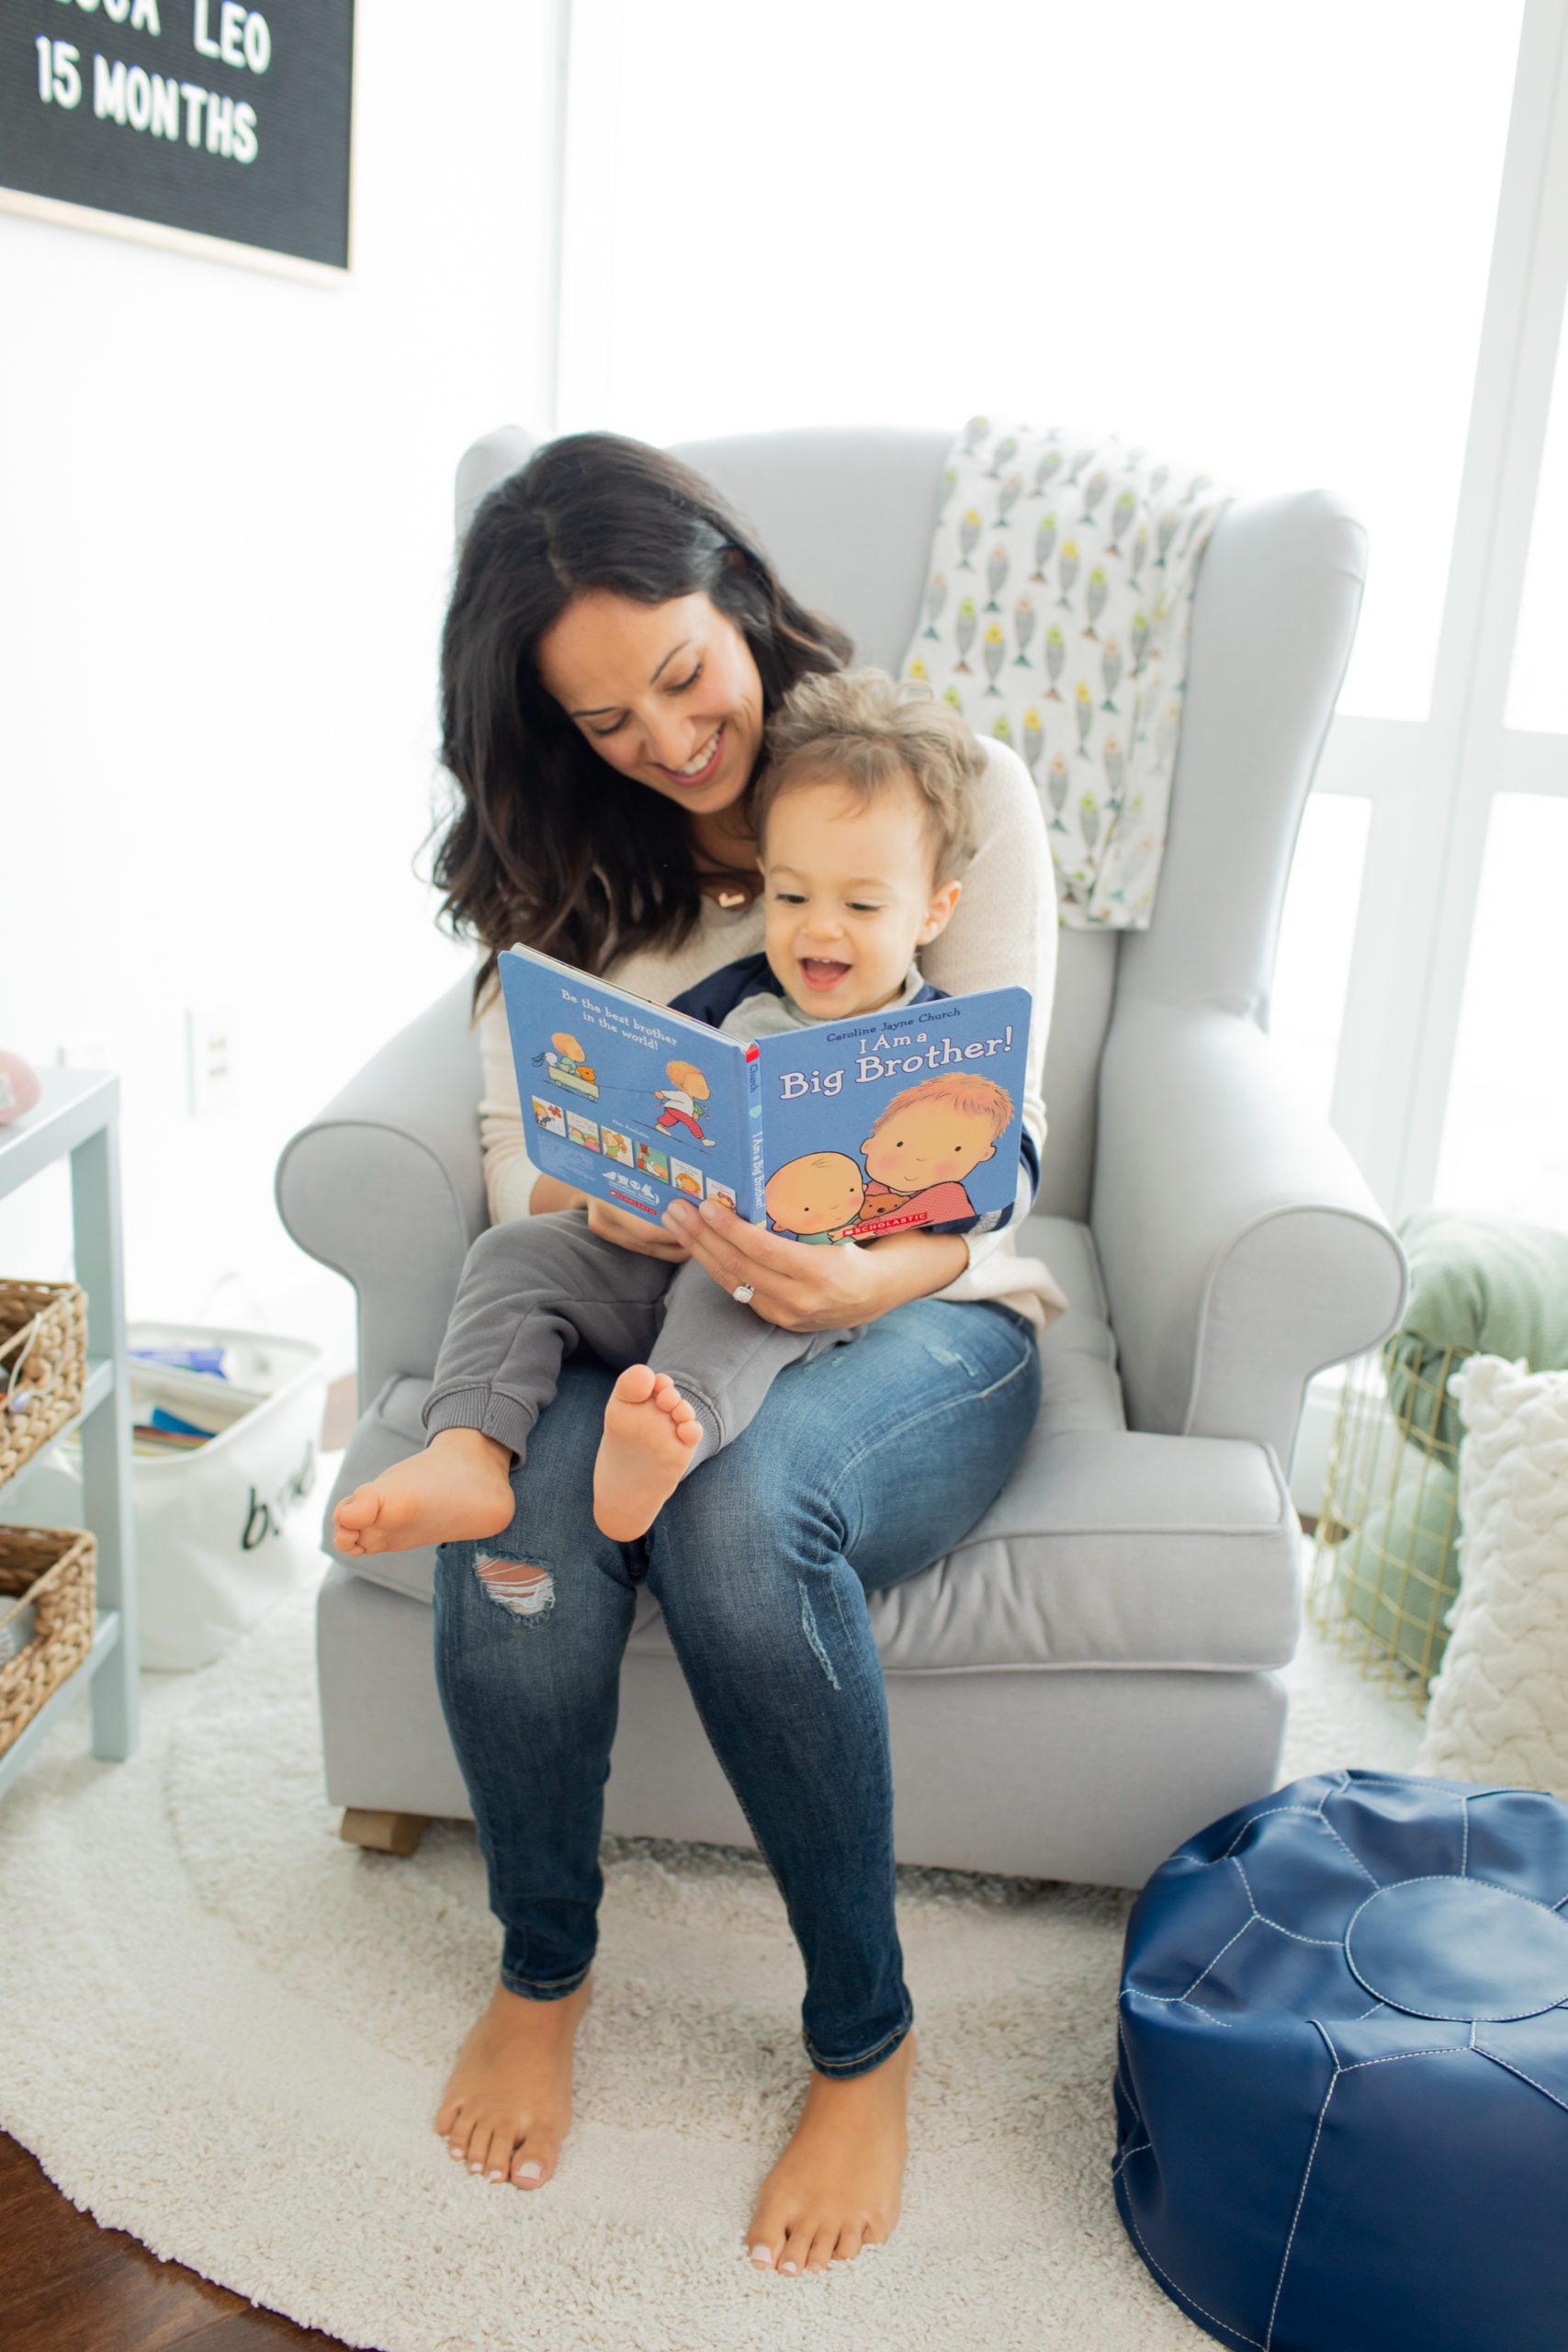 What I want to do differently with second baby